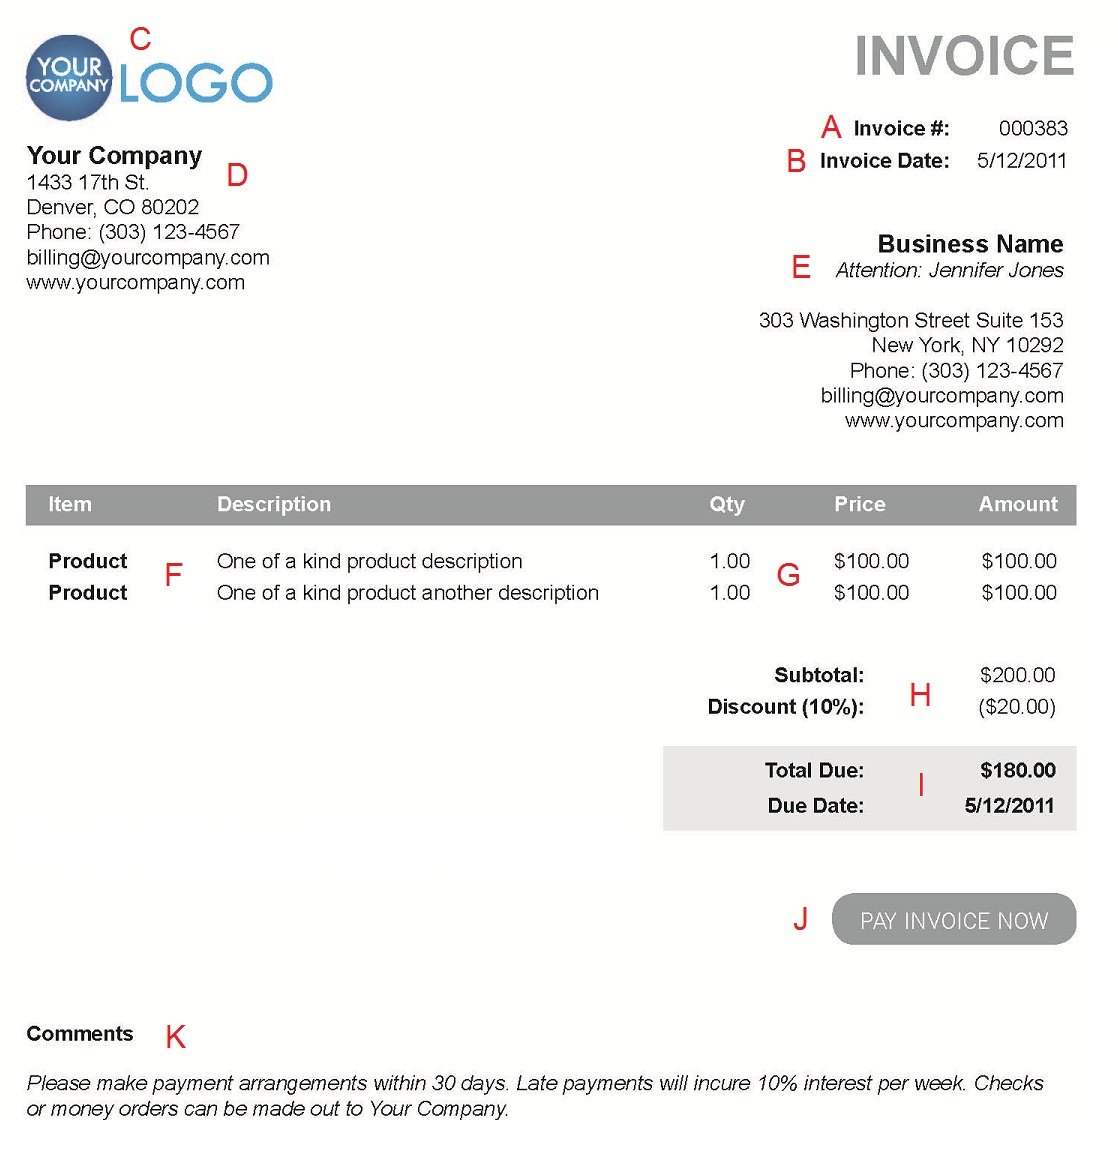 Musclebuildingtipsus  Fascinating The  Different Sections Of An Electronic Payment Invoice With Goodlooking A  With Astounding Invoice Freelance Also Easy Invoicing In Addition How To Type Up An Invoice And Invoicing With Paypal As Well As What Is Factory Invoice Price Additionally Google Spreadsheet Invoice Template From Paysimplecom With Musclebuildingtipsus  Goodlooking The  Different Sections Of An Electronic Payment Invoice With Astounding A  And Fascinating Invoice Freelance Also Easy Invoicing In Addition How To Type Up An Invoice From Paysimplecom